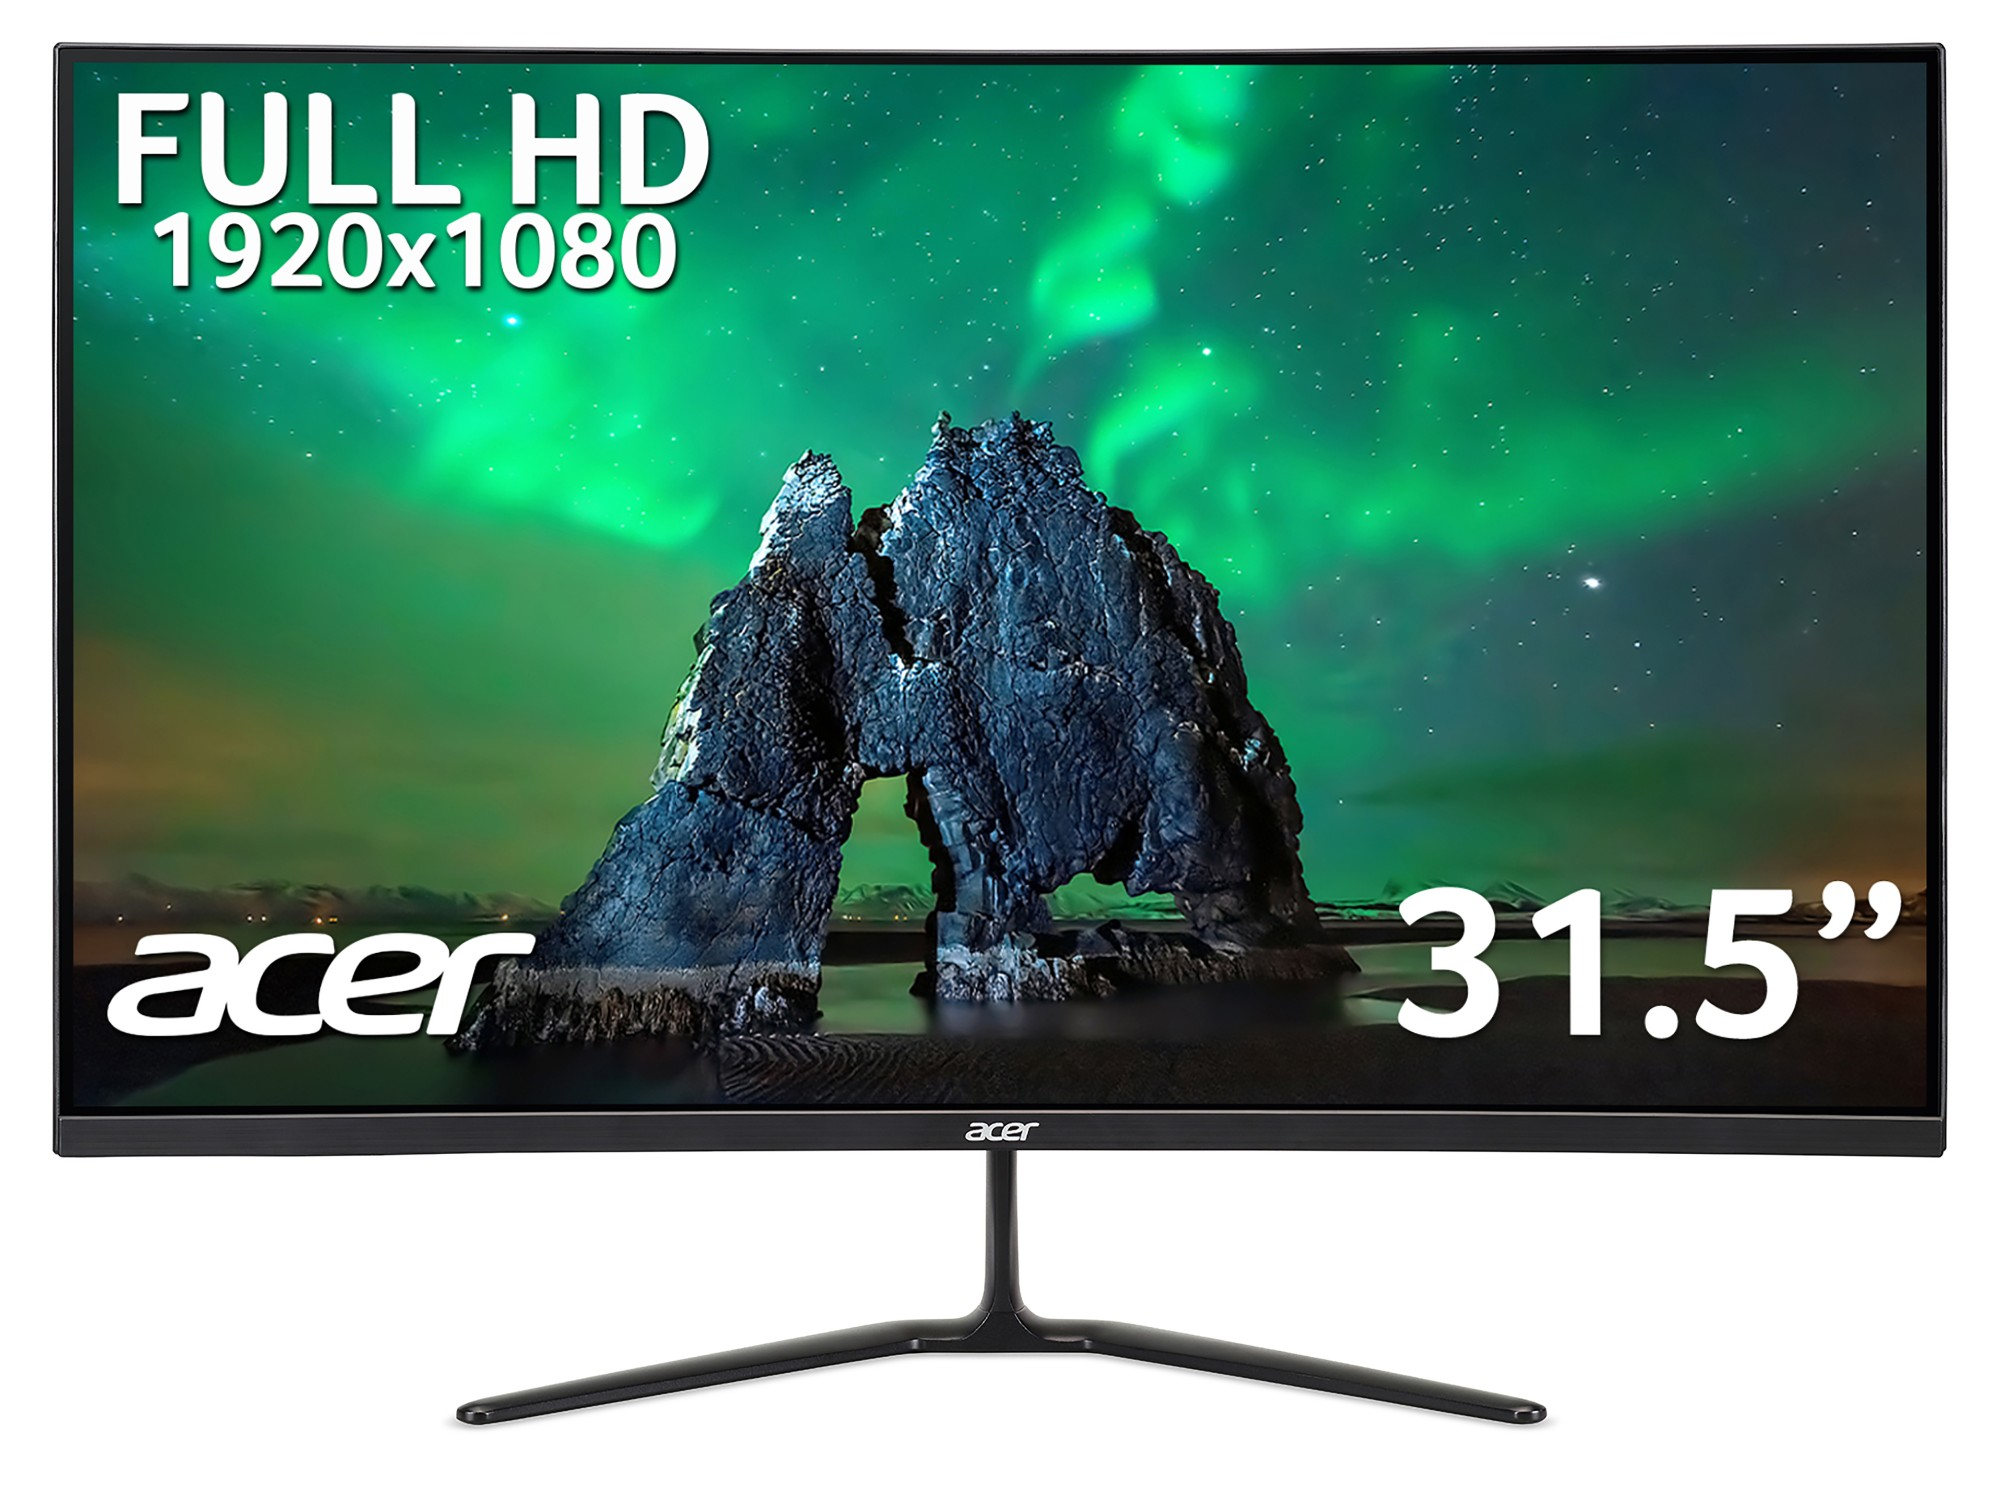 Acer ED0 ED320QRPbiipx 31.5 inch FHD Curved Monitor (VA Panel, FreeSync, 165Hz, 5ms, DP, HDMI, Black)